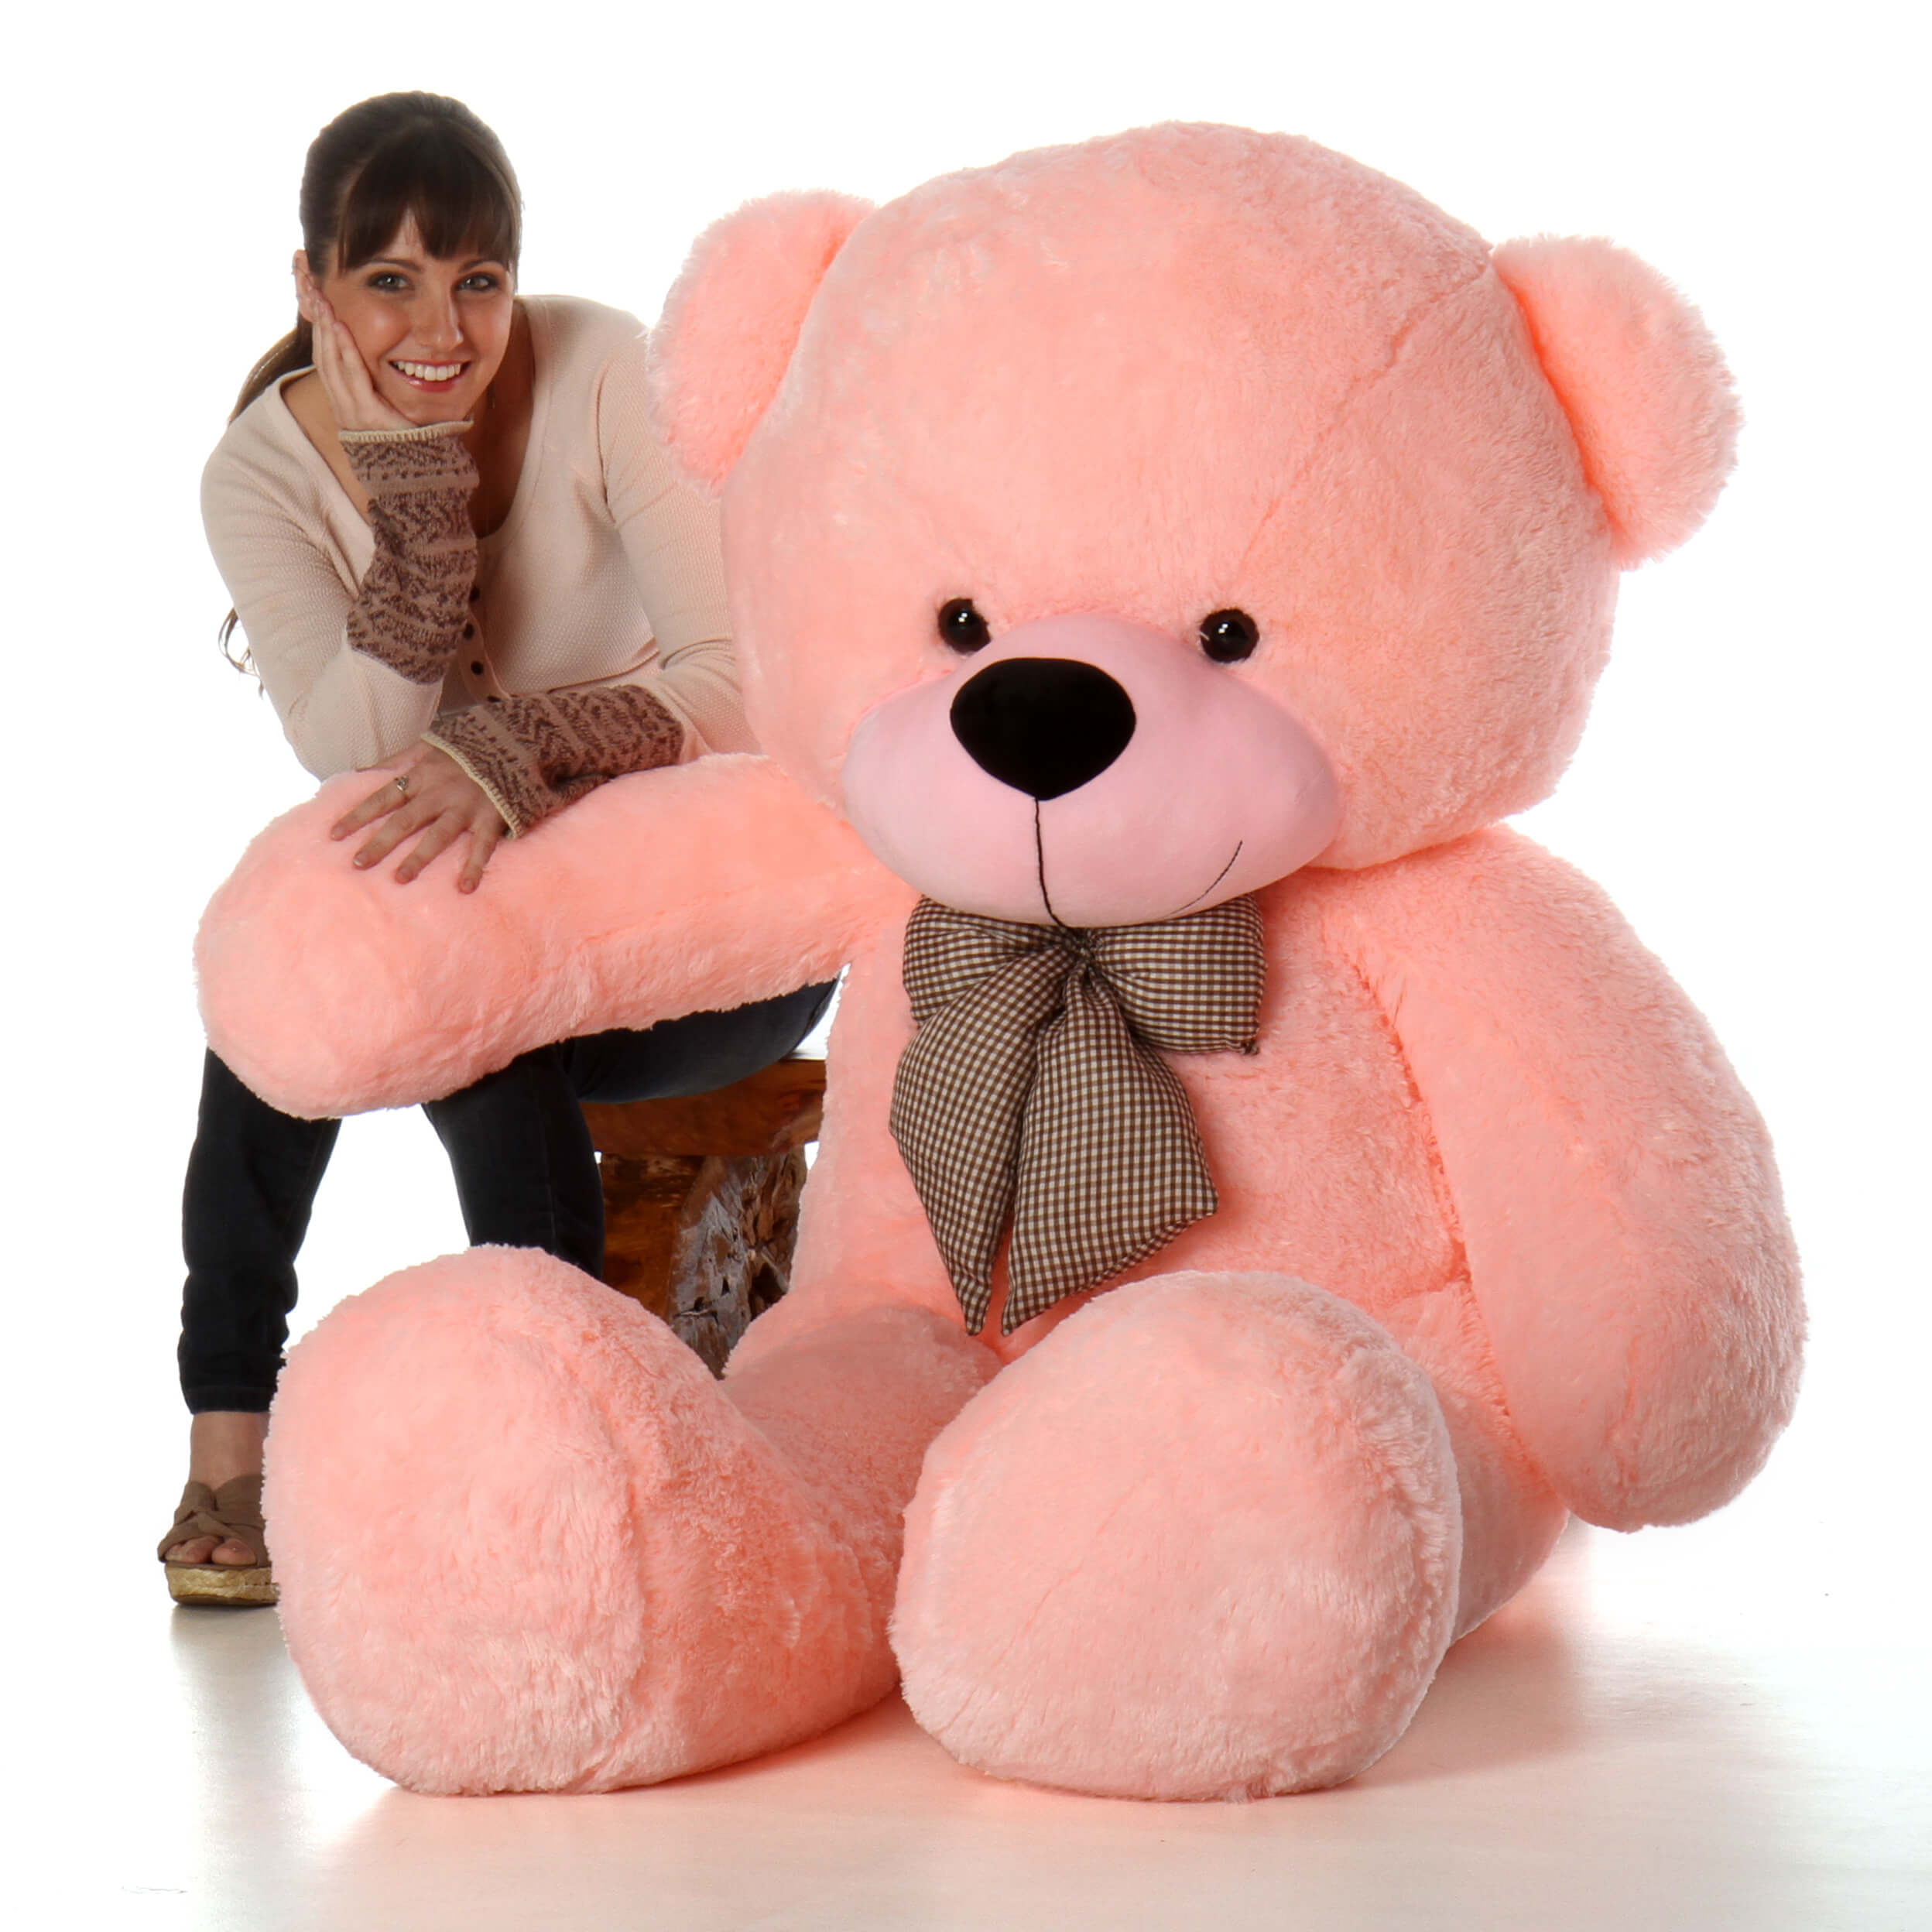 72in-cute-and-soft-lady-cuddles-pink-teddy-bear-1.jpg